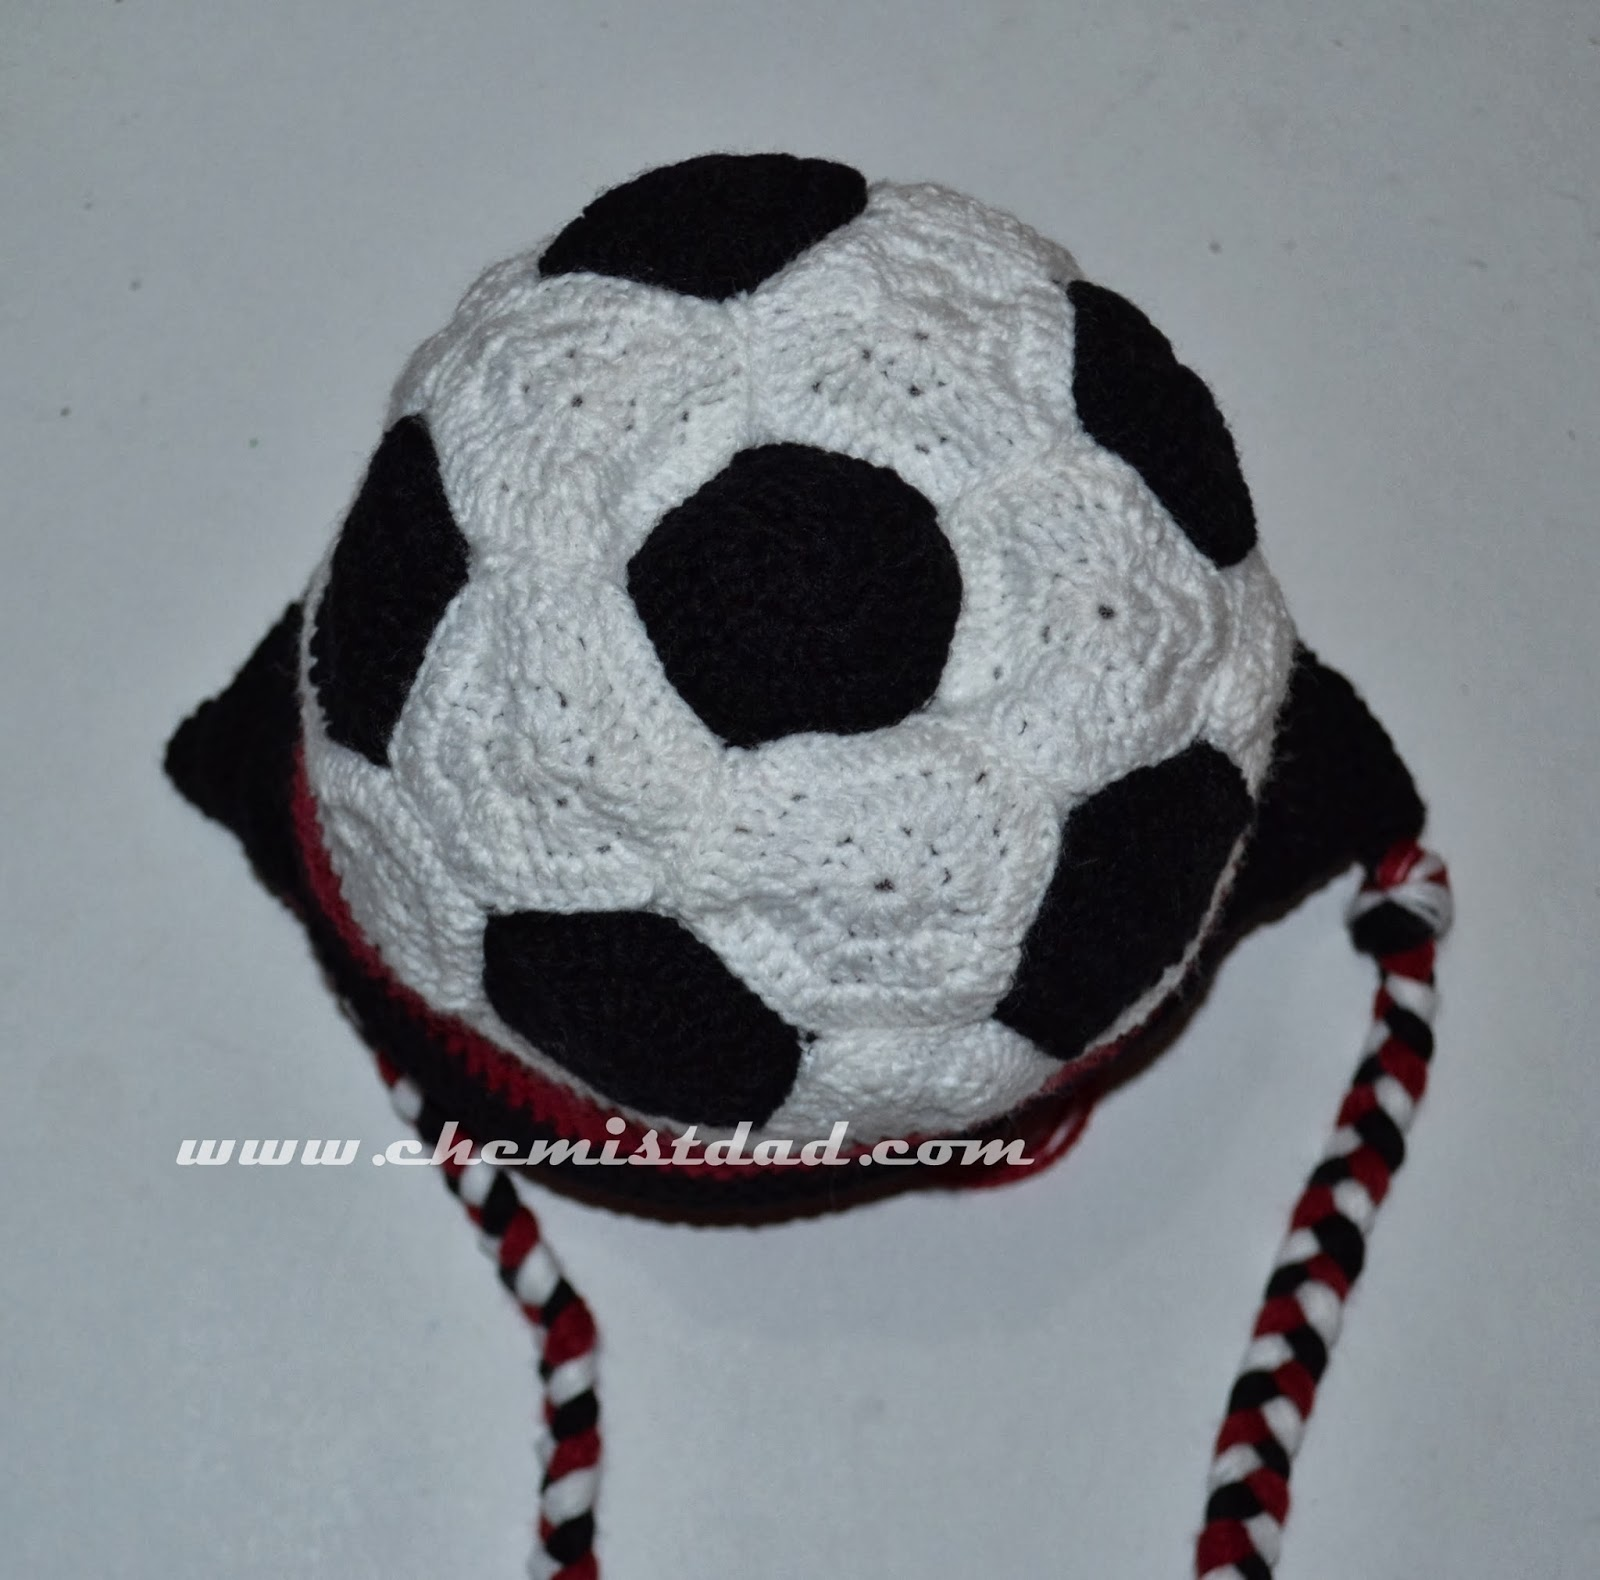 crochet, crochet hat, crochet soccer ball hat, crochet soccer ball hat pattern, free crochet pattern, Mom & Dad Crochet,